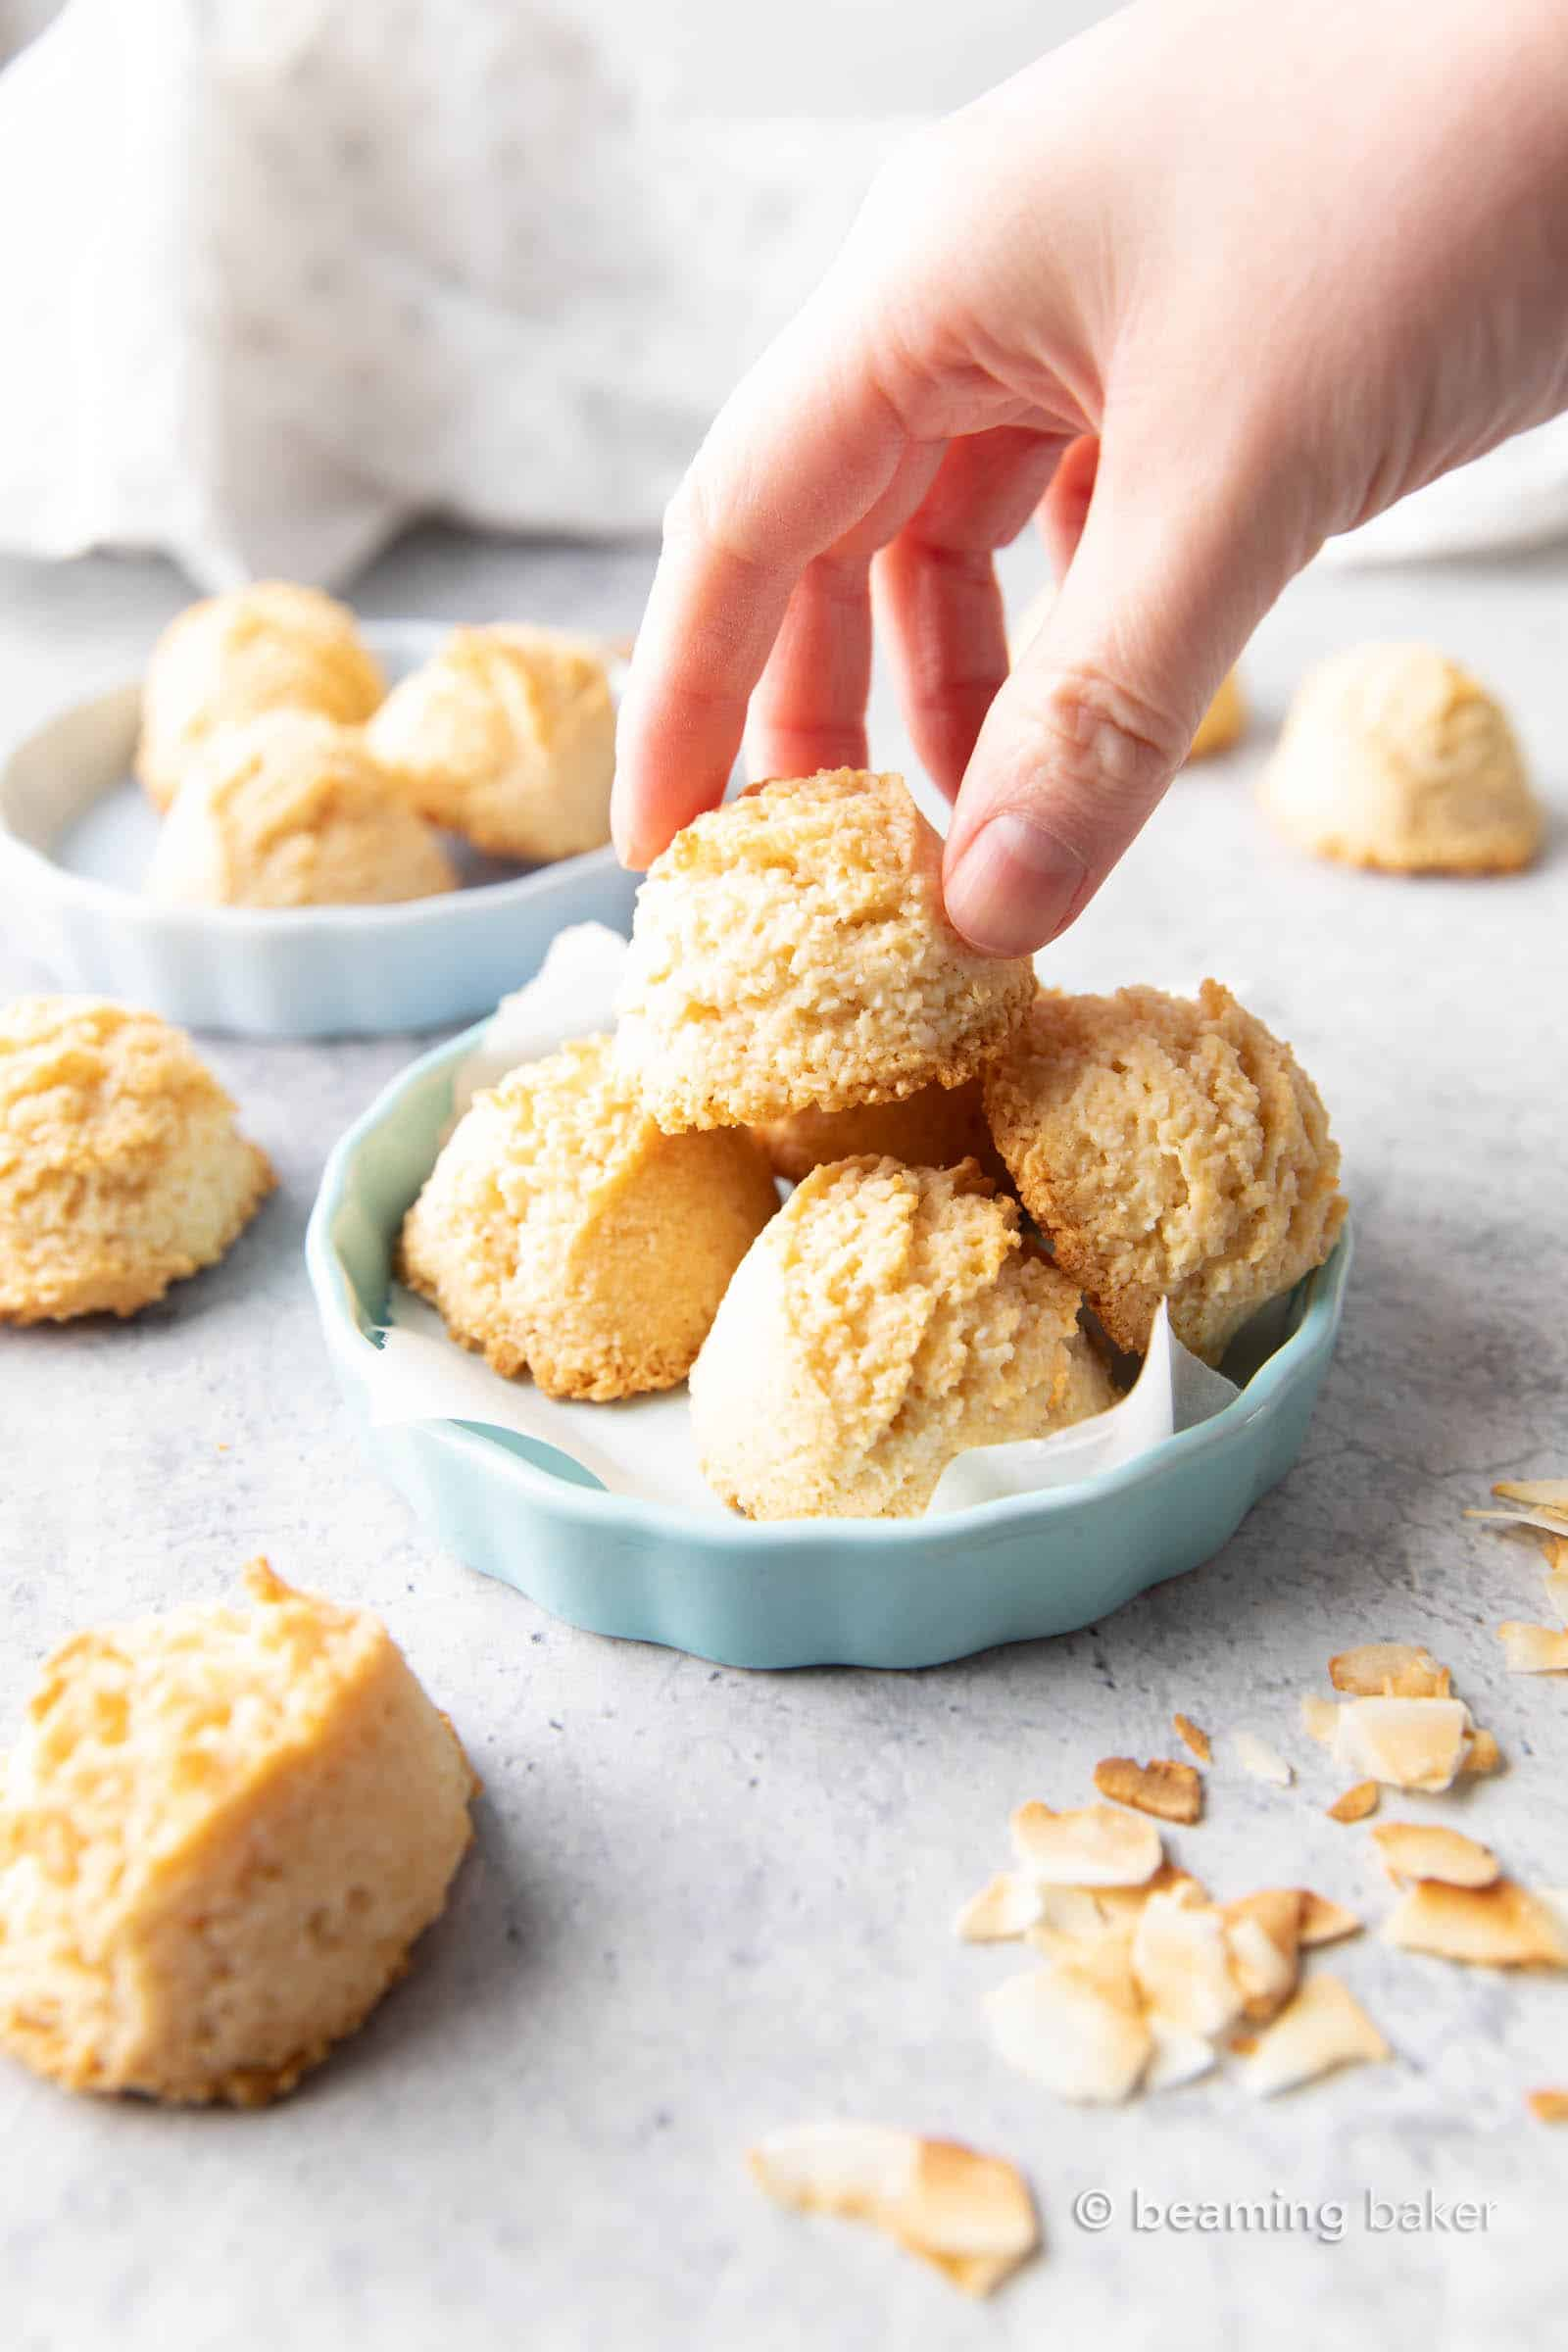 Gluten Free Coconut Macaroons Recipe: this easy gluten free macaroons recipe yields soft & chewy coconut cookies with a crispy exterior! Vegan, Paleo, Dairy-Free, Egg-Free. #Coconut #Macaroons #GlutenFree #Cookies #Easter | Recipe at BeamingBaker.com